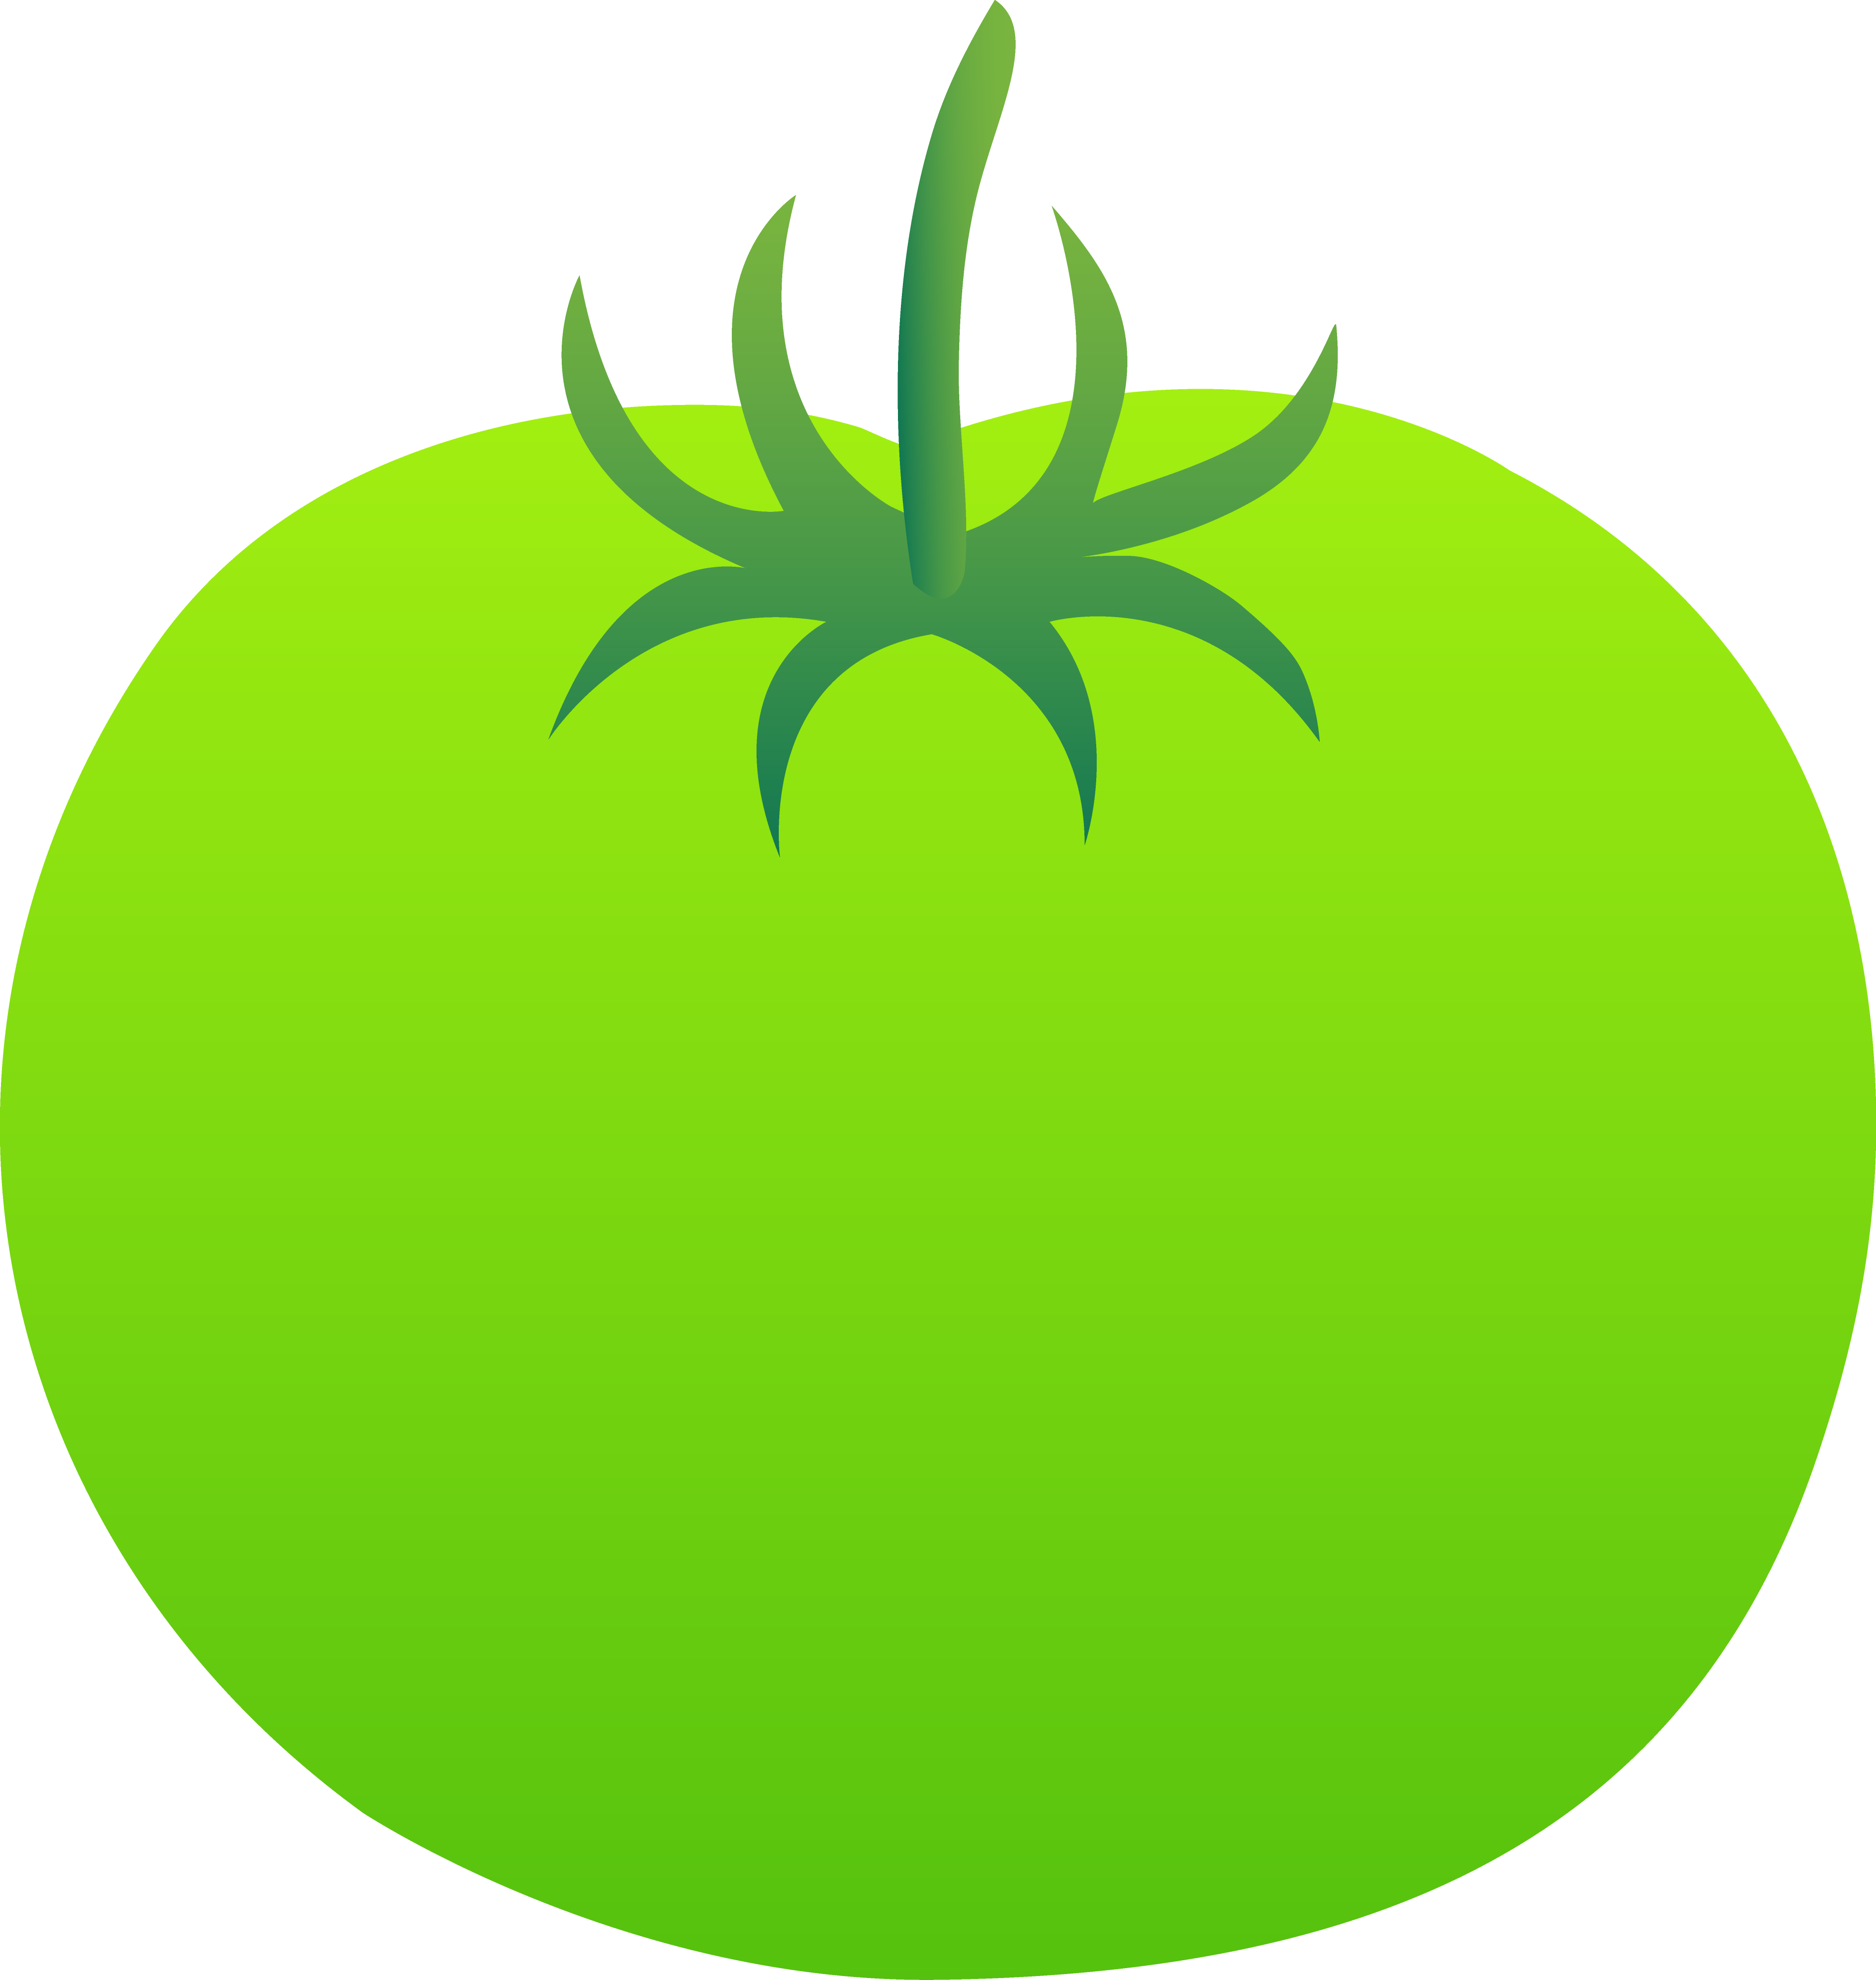 Tomato round object